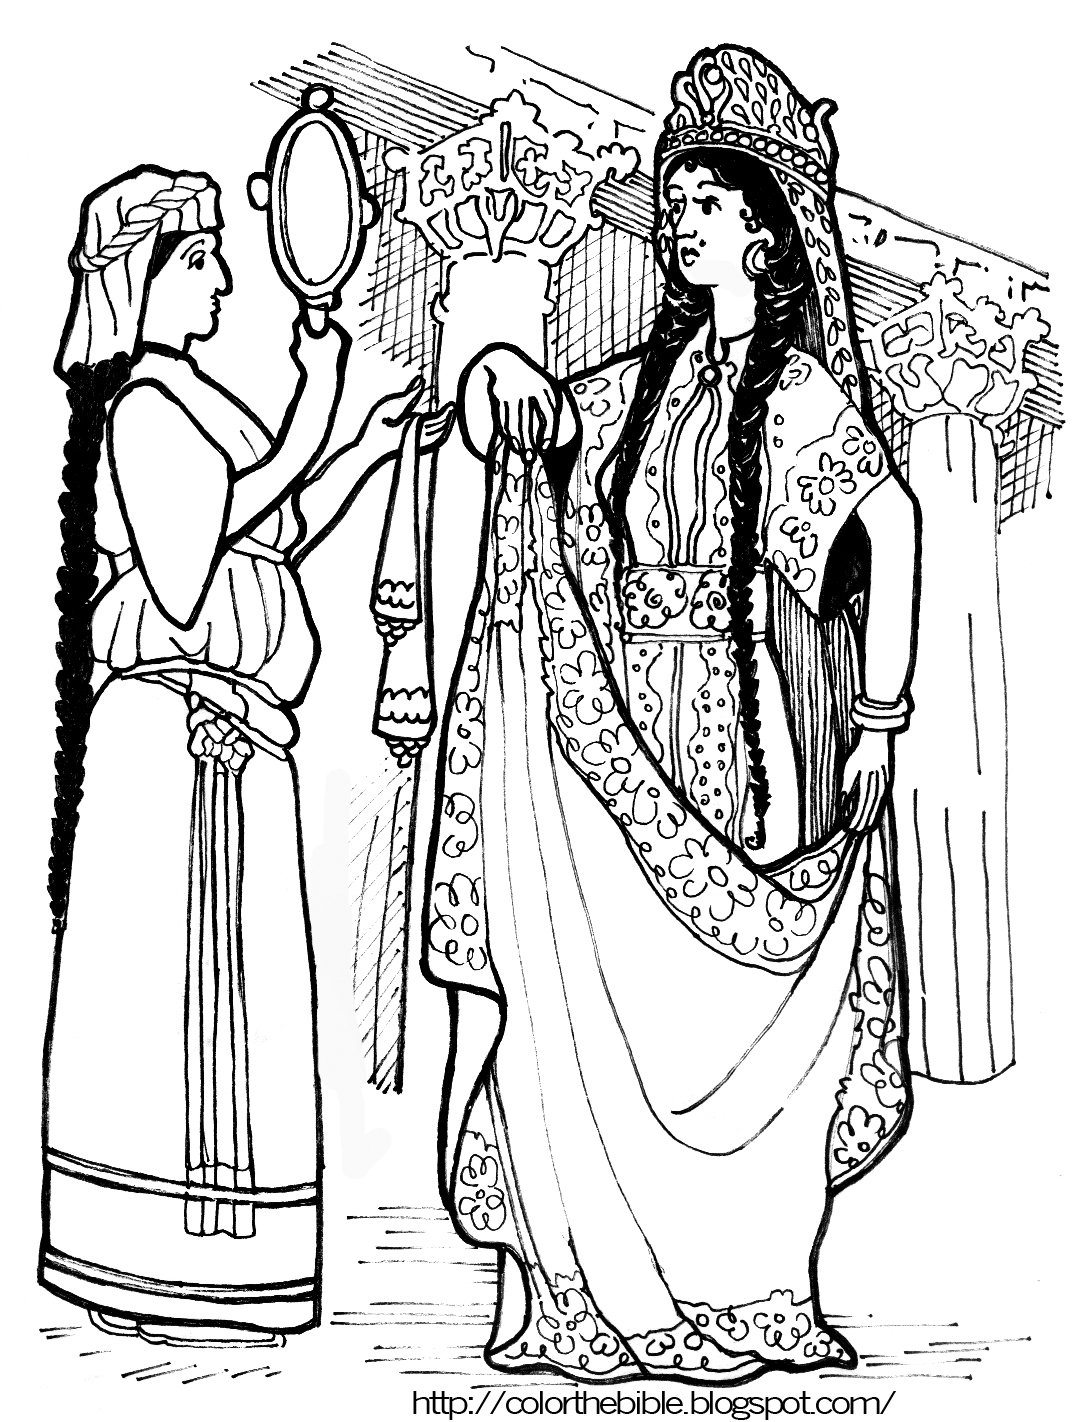 color queen esther color queen esther queen elizabeth ii coloring pages